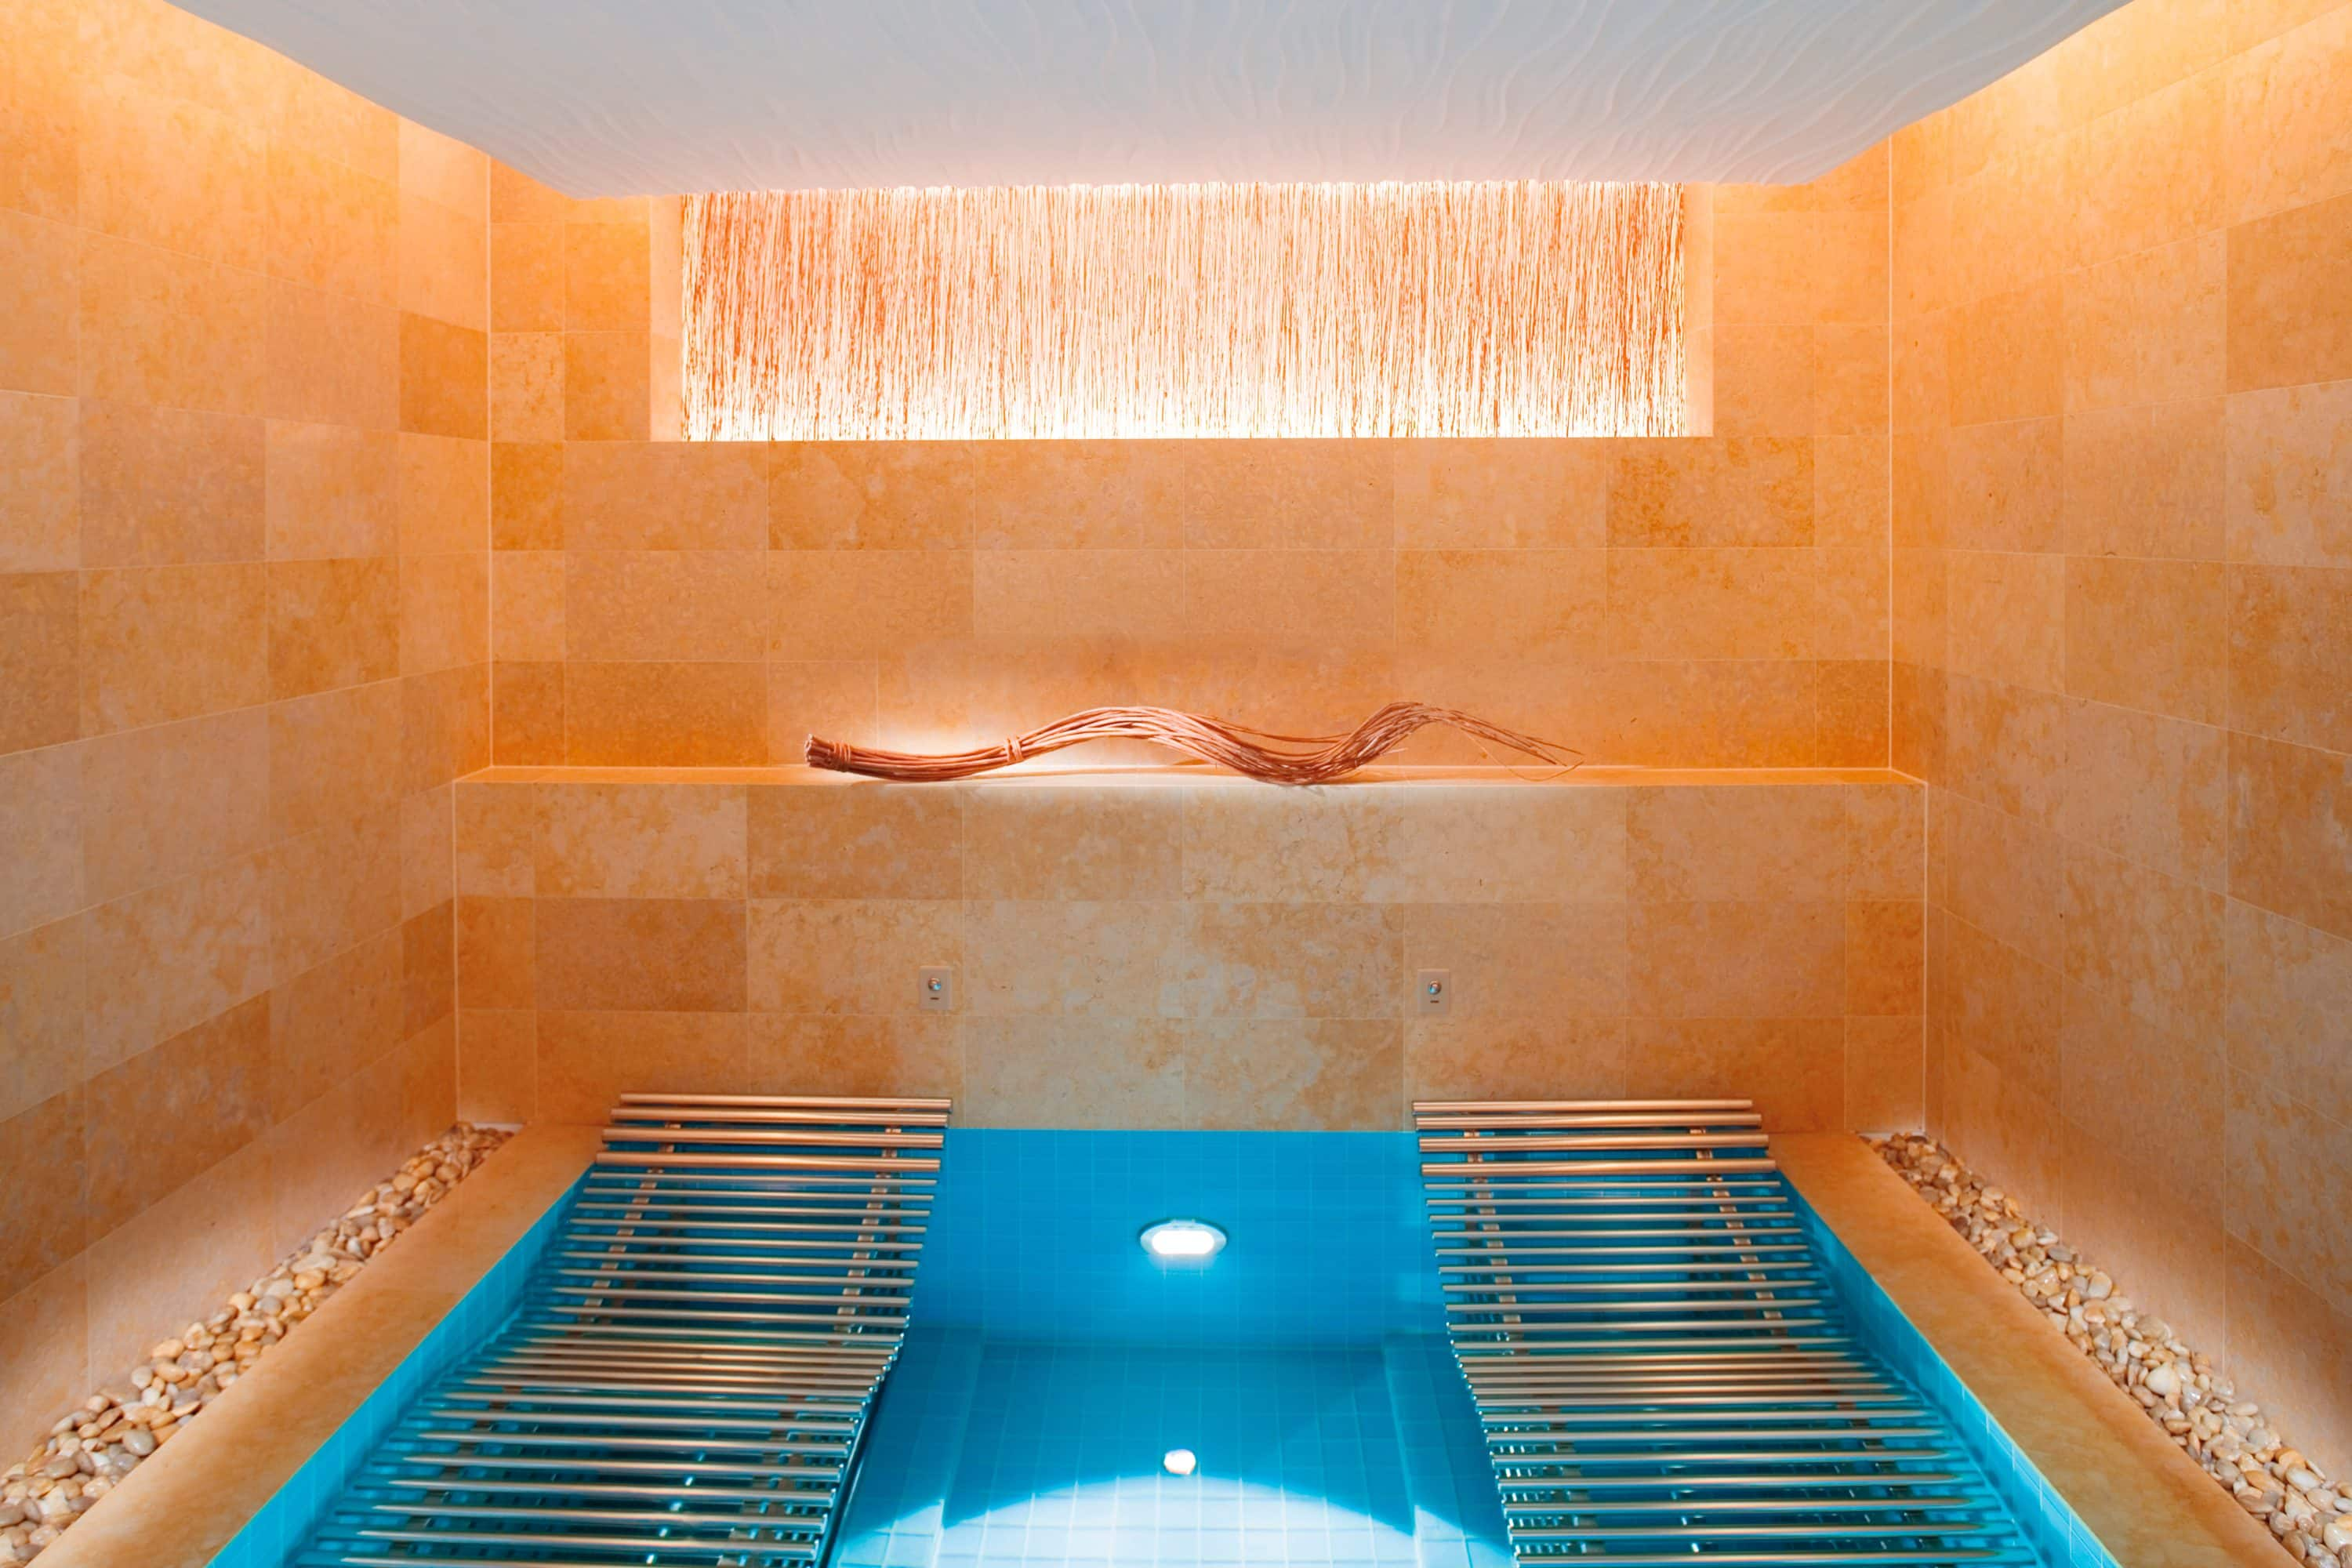 Vitality spa pool at The Landmark Mandarin Oriental